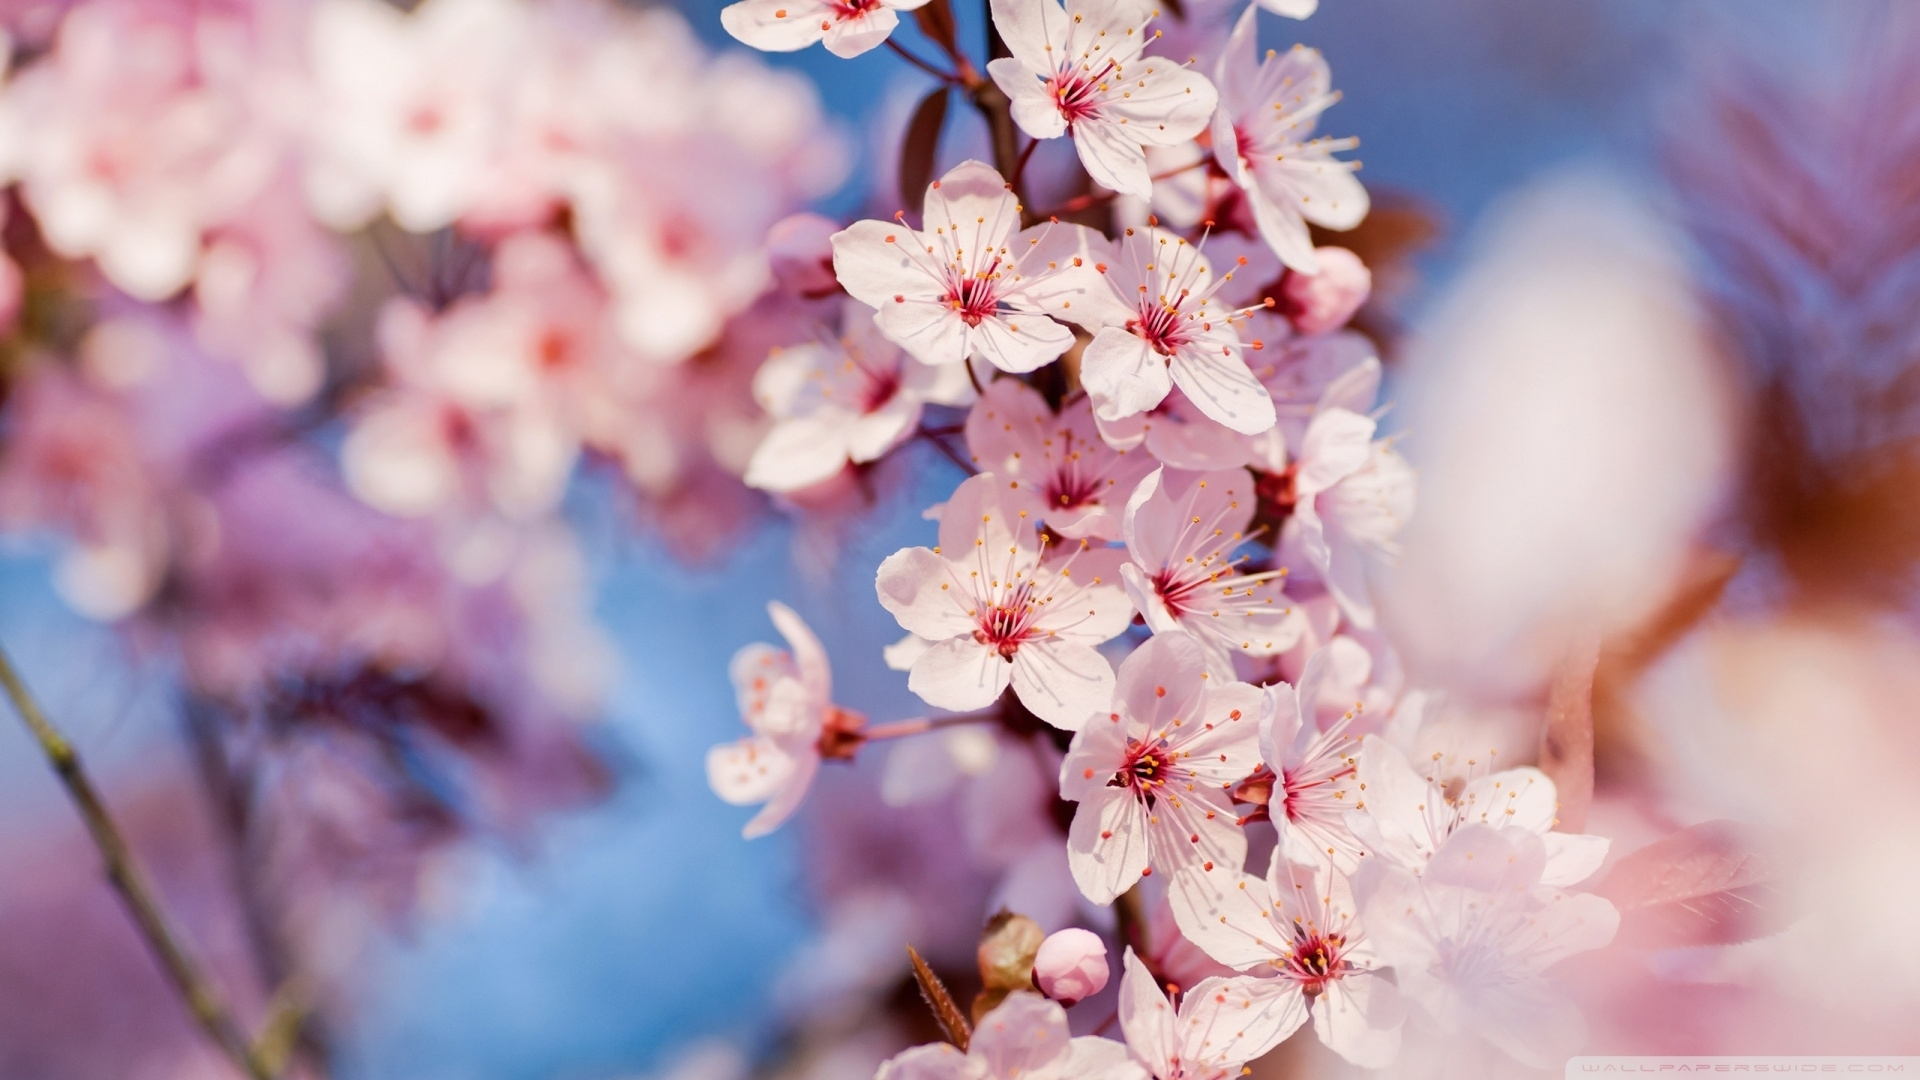 cherry blossom ❤ 4k hd desktop wallpaper for • dual monitor